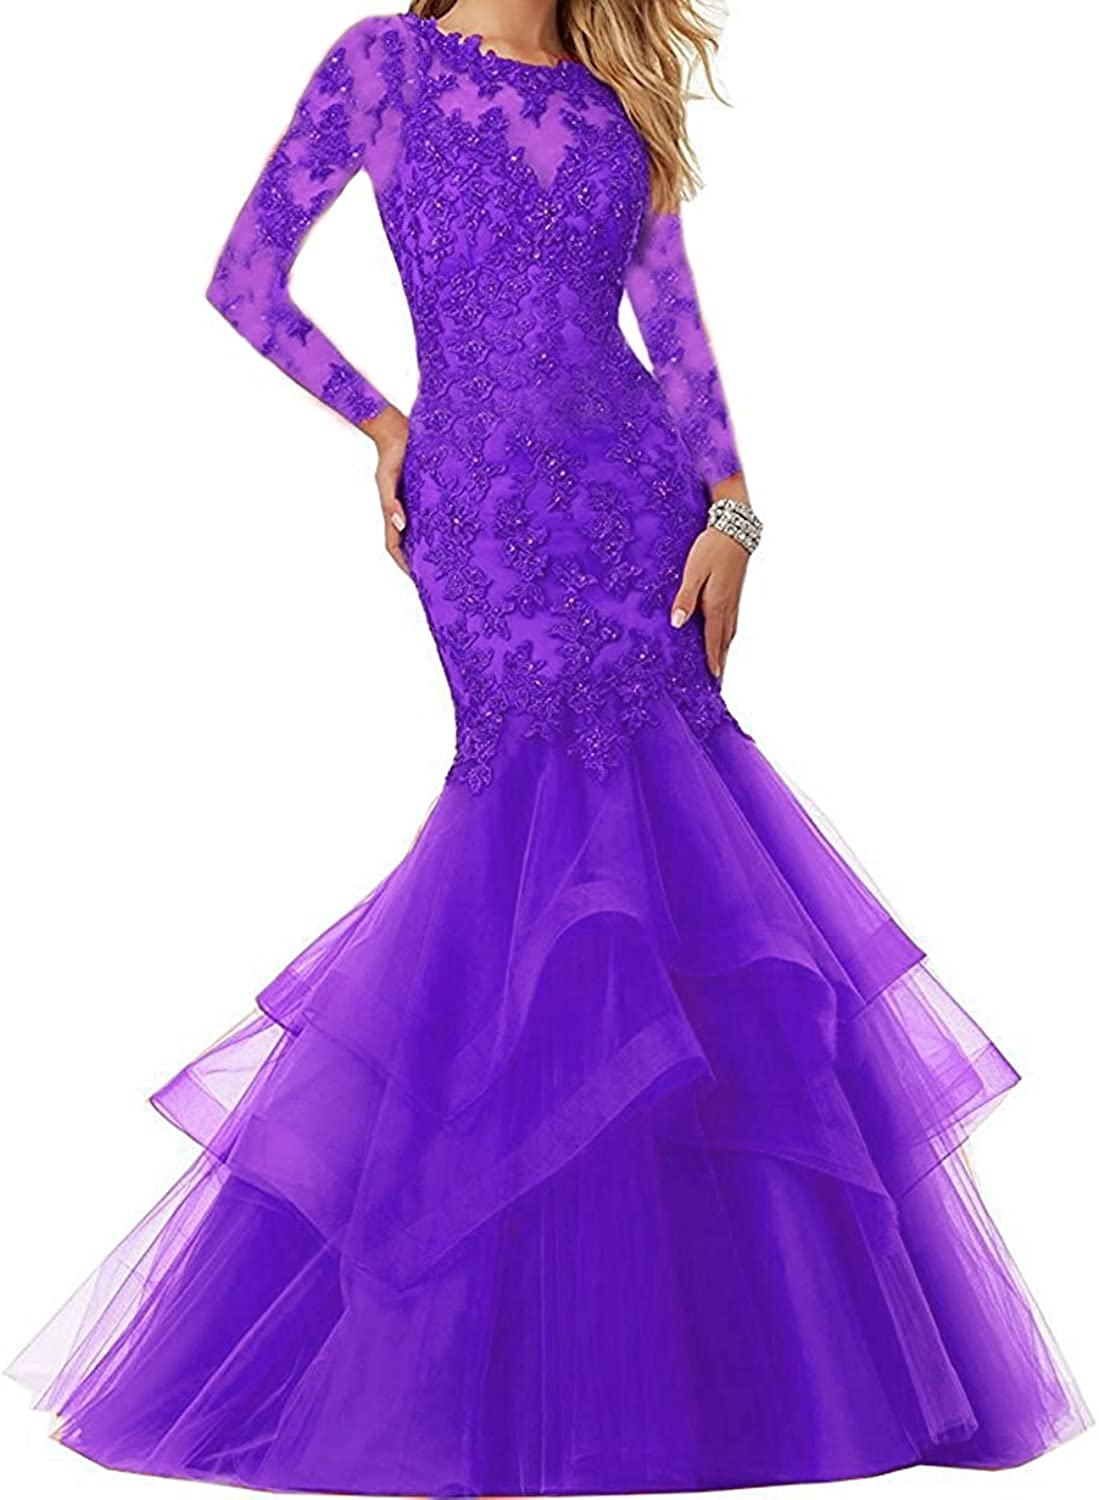 Bonnie Sexy Mermaid Two Piece Prom Dresses Long Beaded Lace Formal Prom Ball Gowns